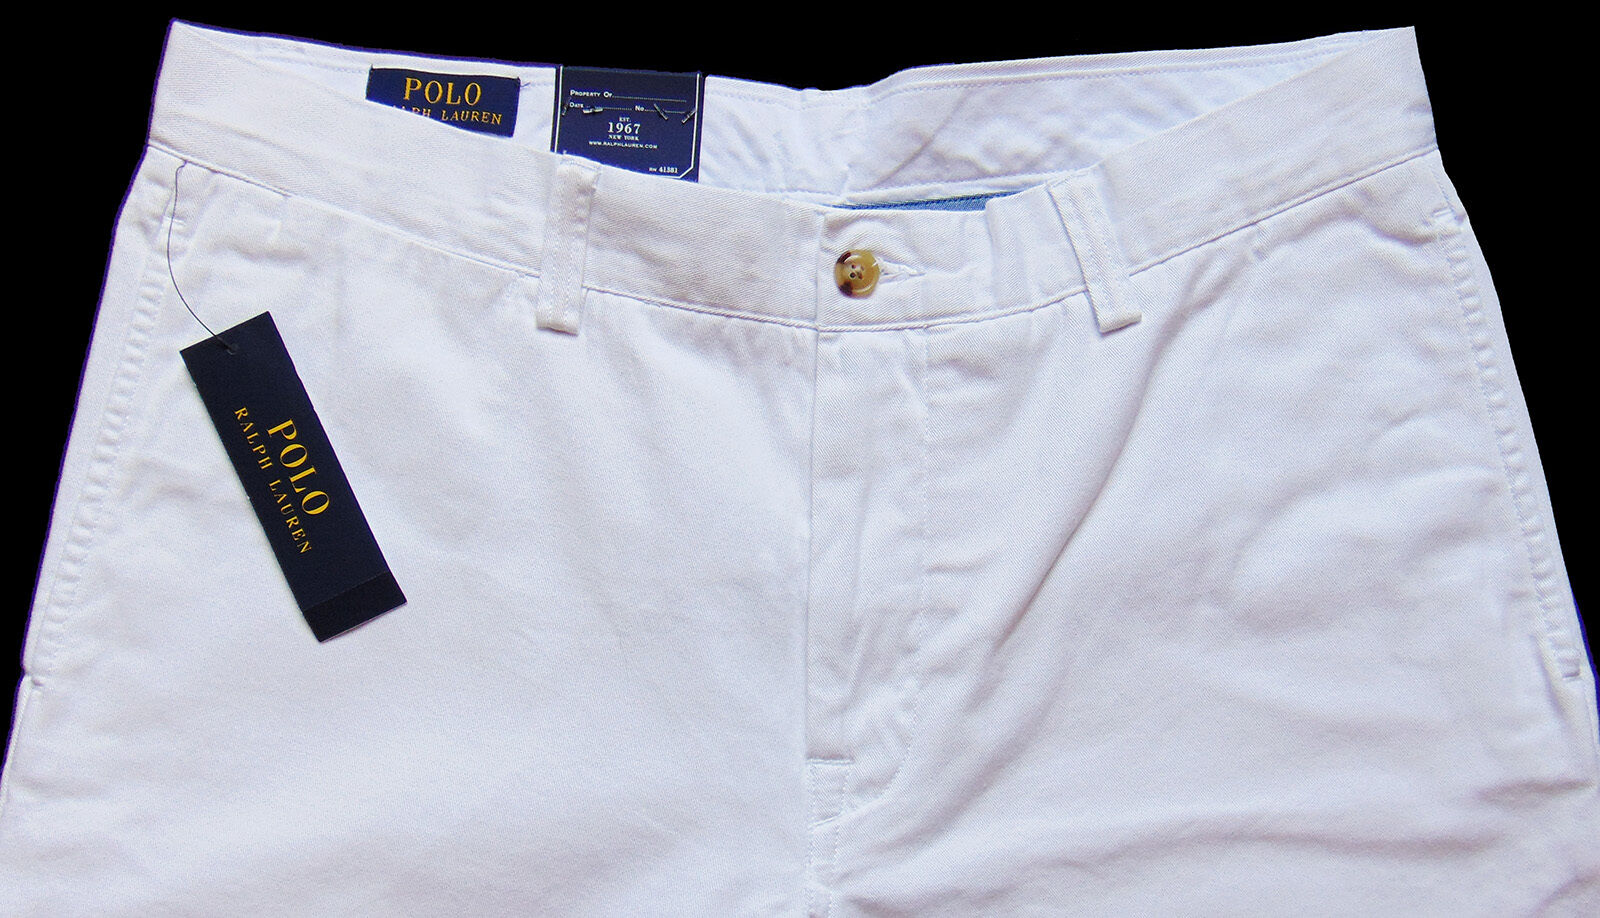 Men's POLO RALPH LAUREN White  Cotton Pants 34x32 NWT Bedford Classic Fit DeFeCt